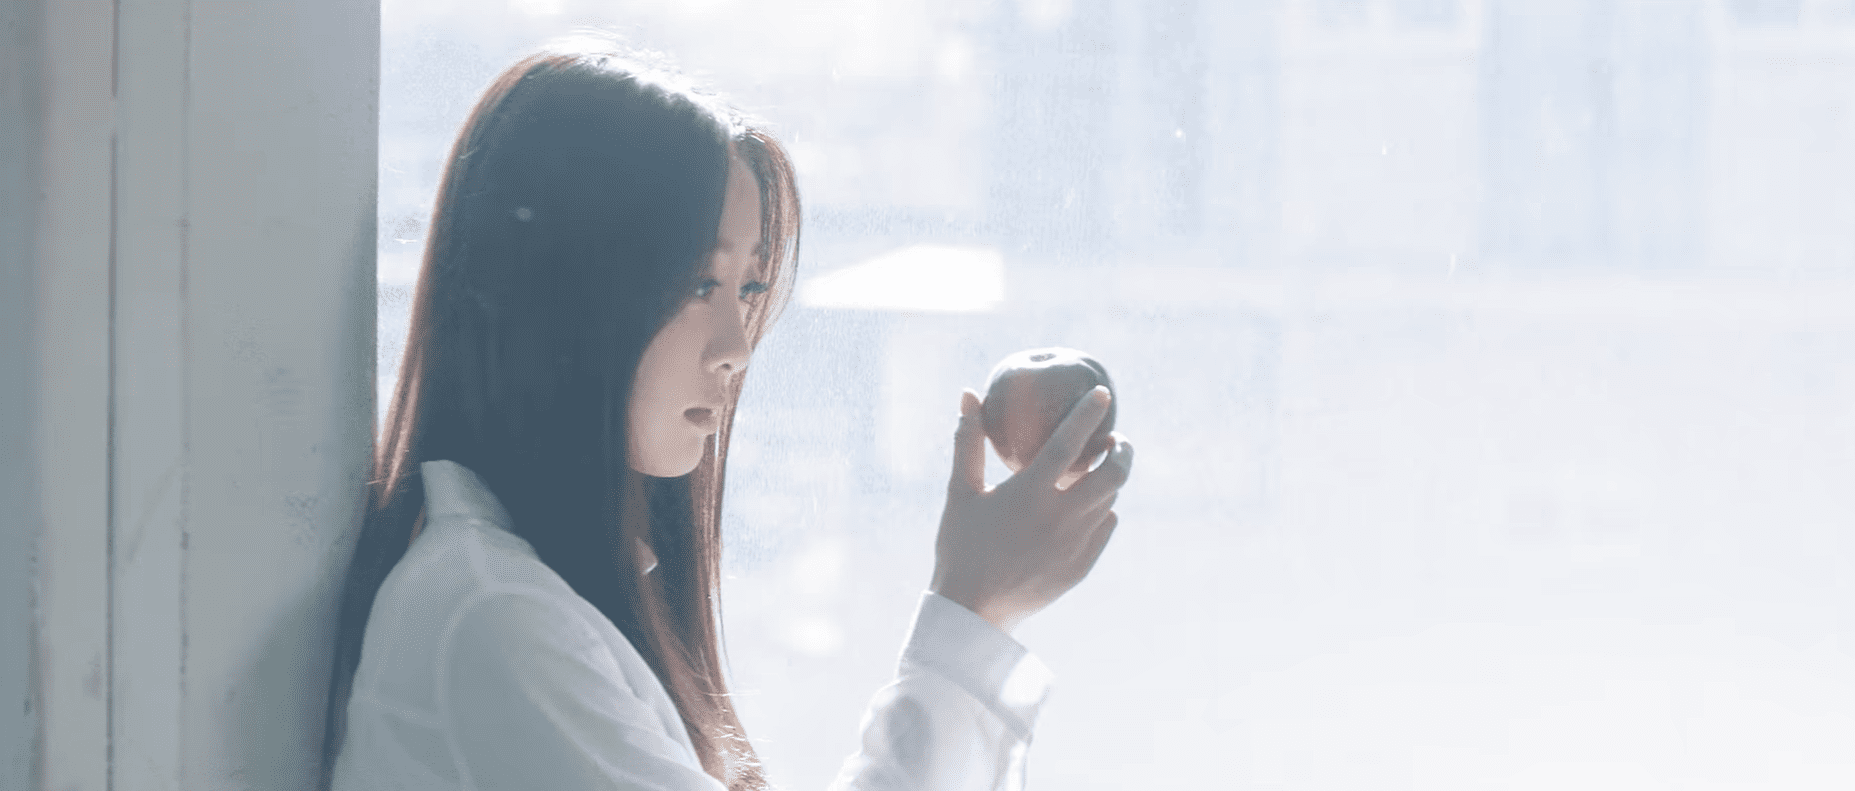 WATCH: New LOONA Member Yves Releases Solo MV